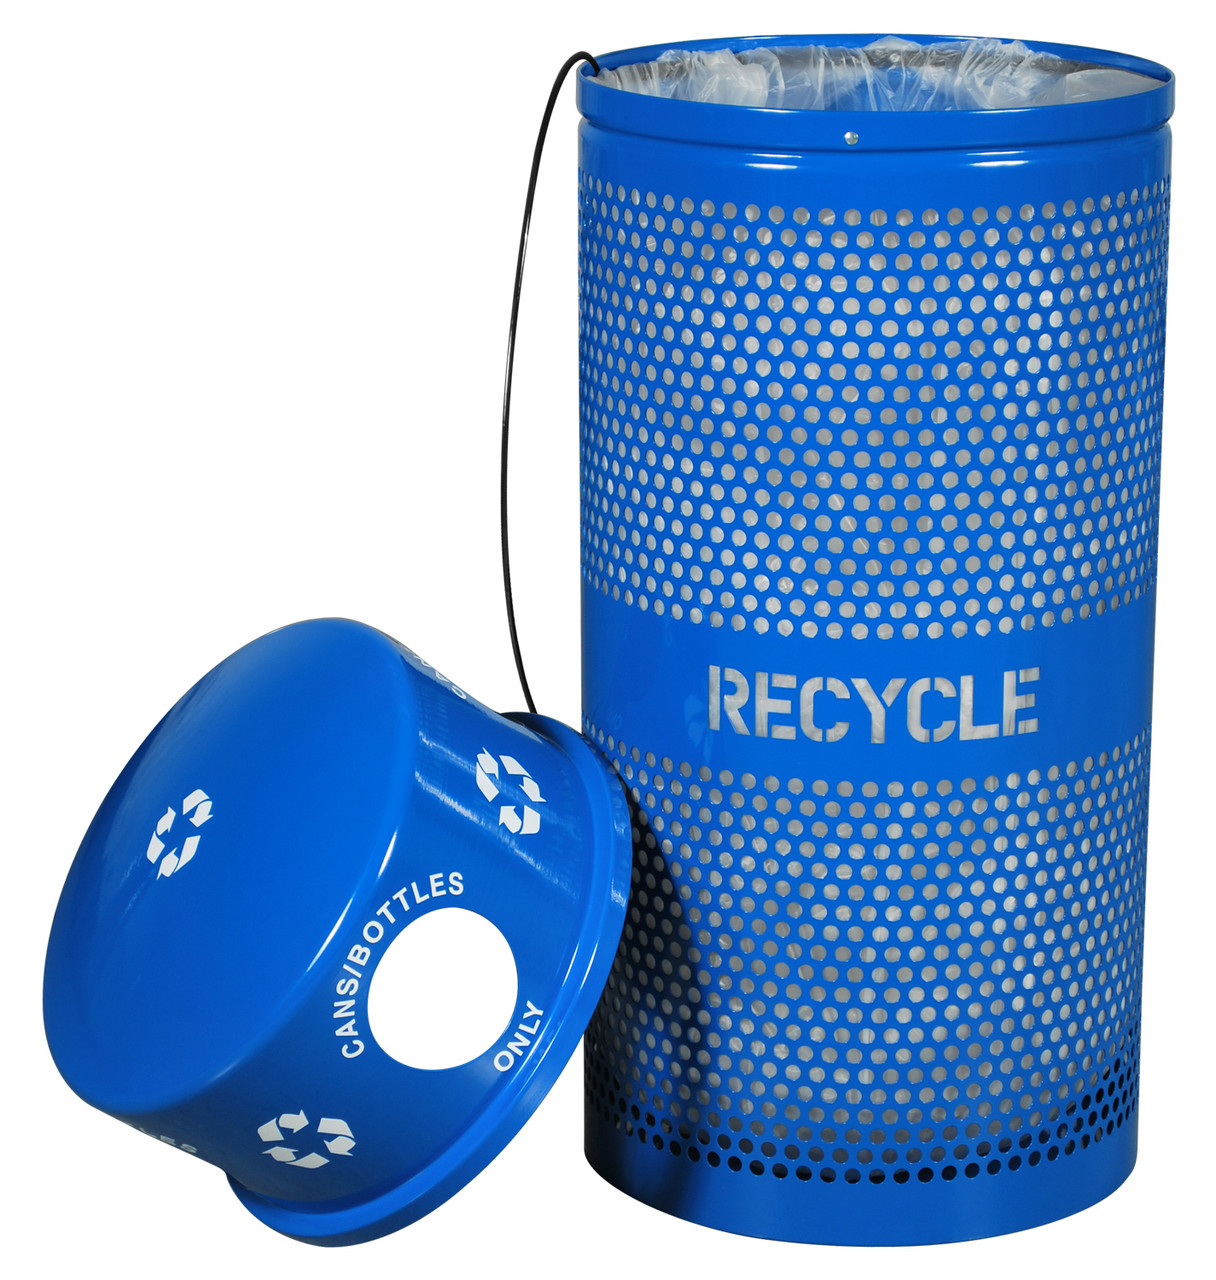 Recycling Receptacle for Cans/Bottles